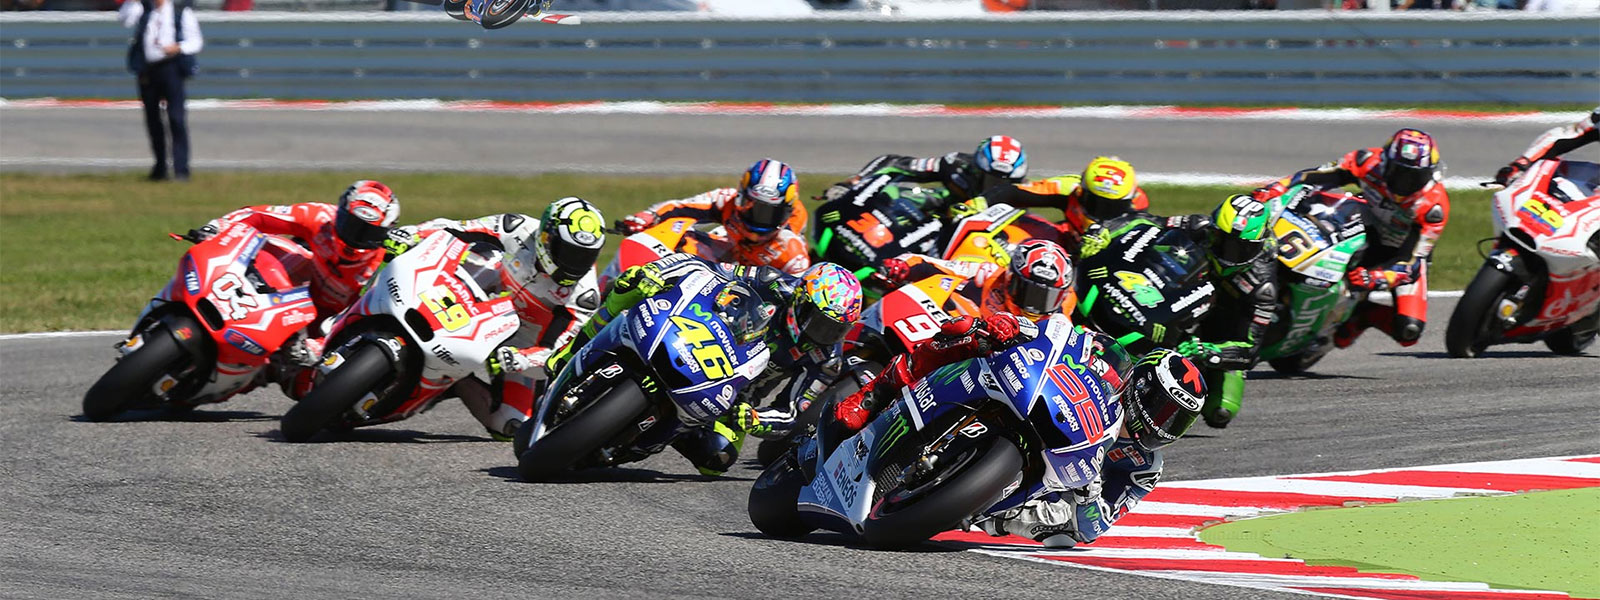 Moto GP and seaside offer